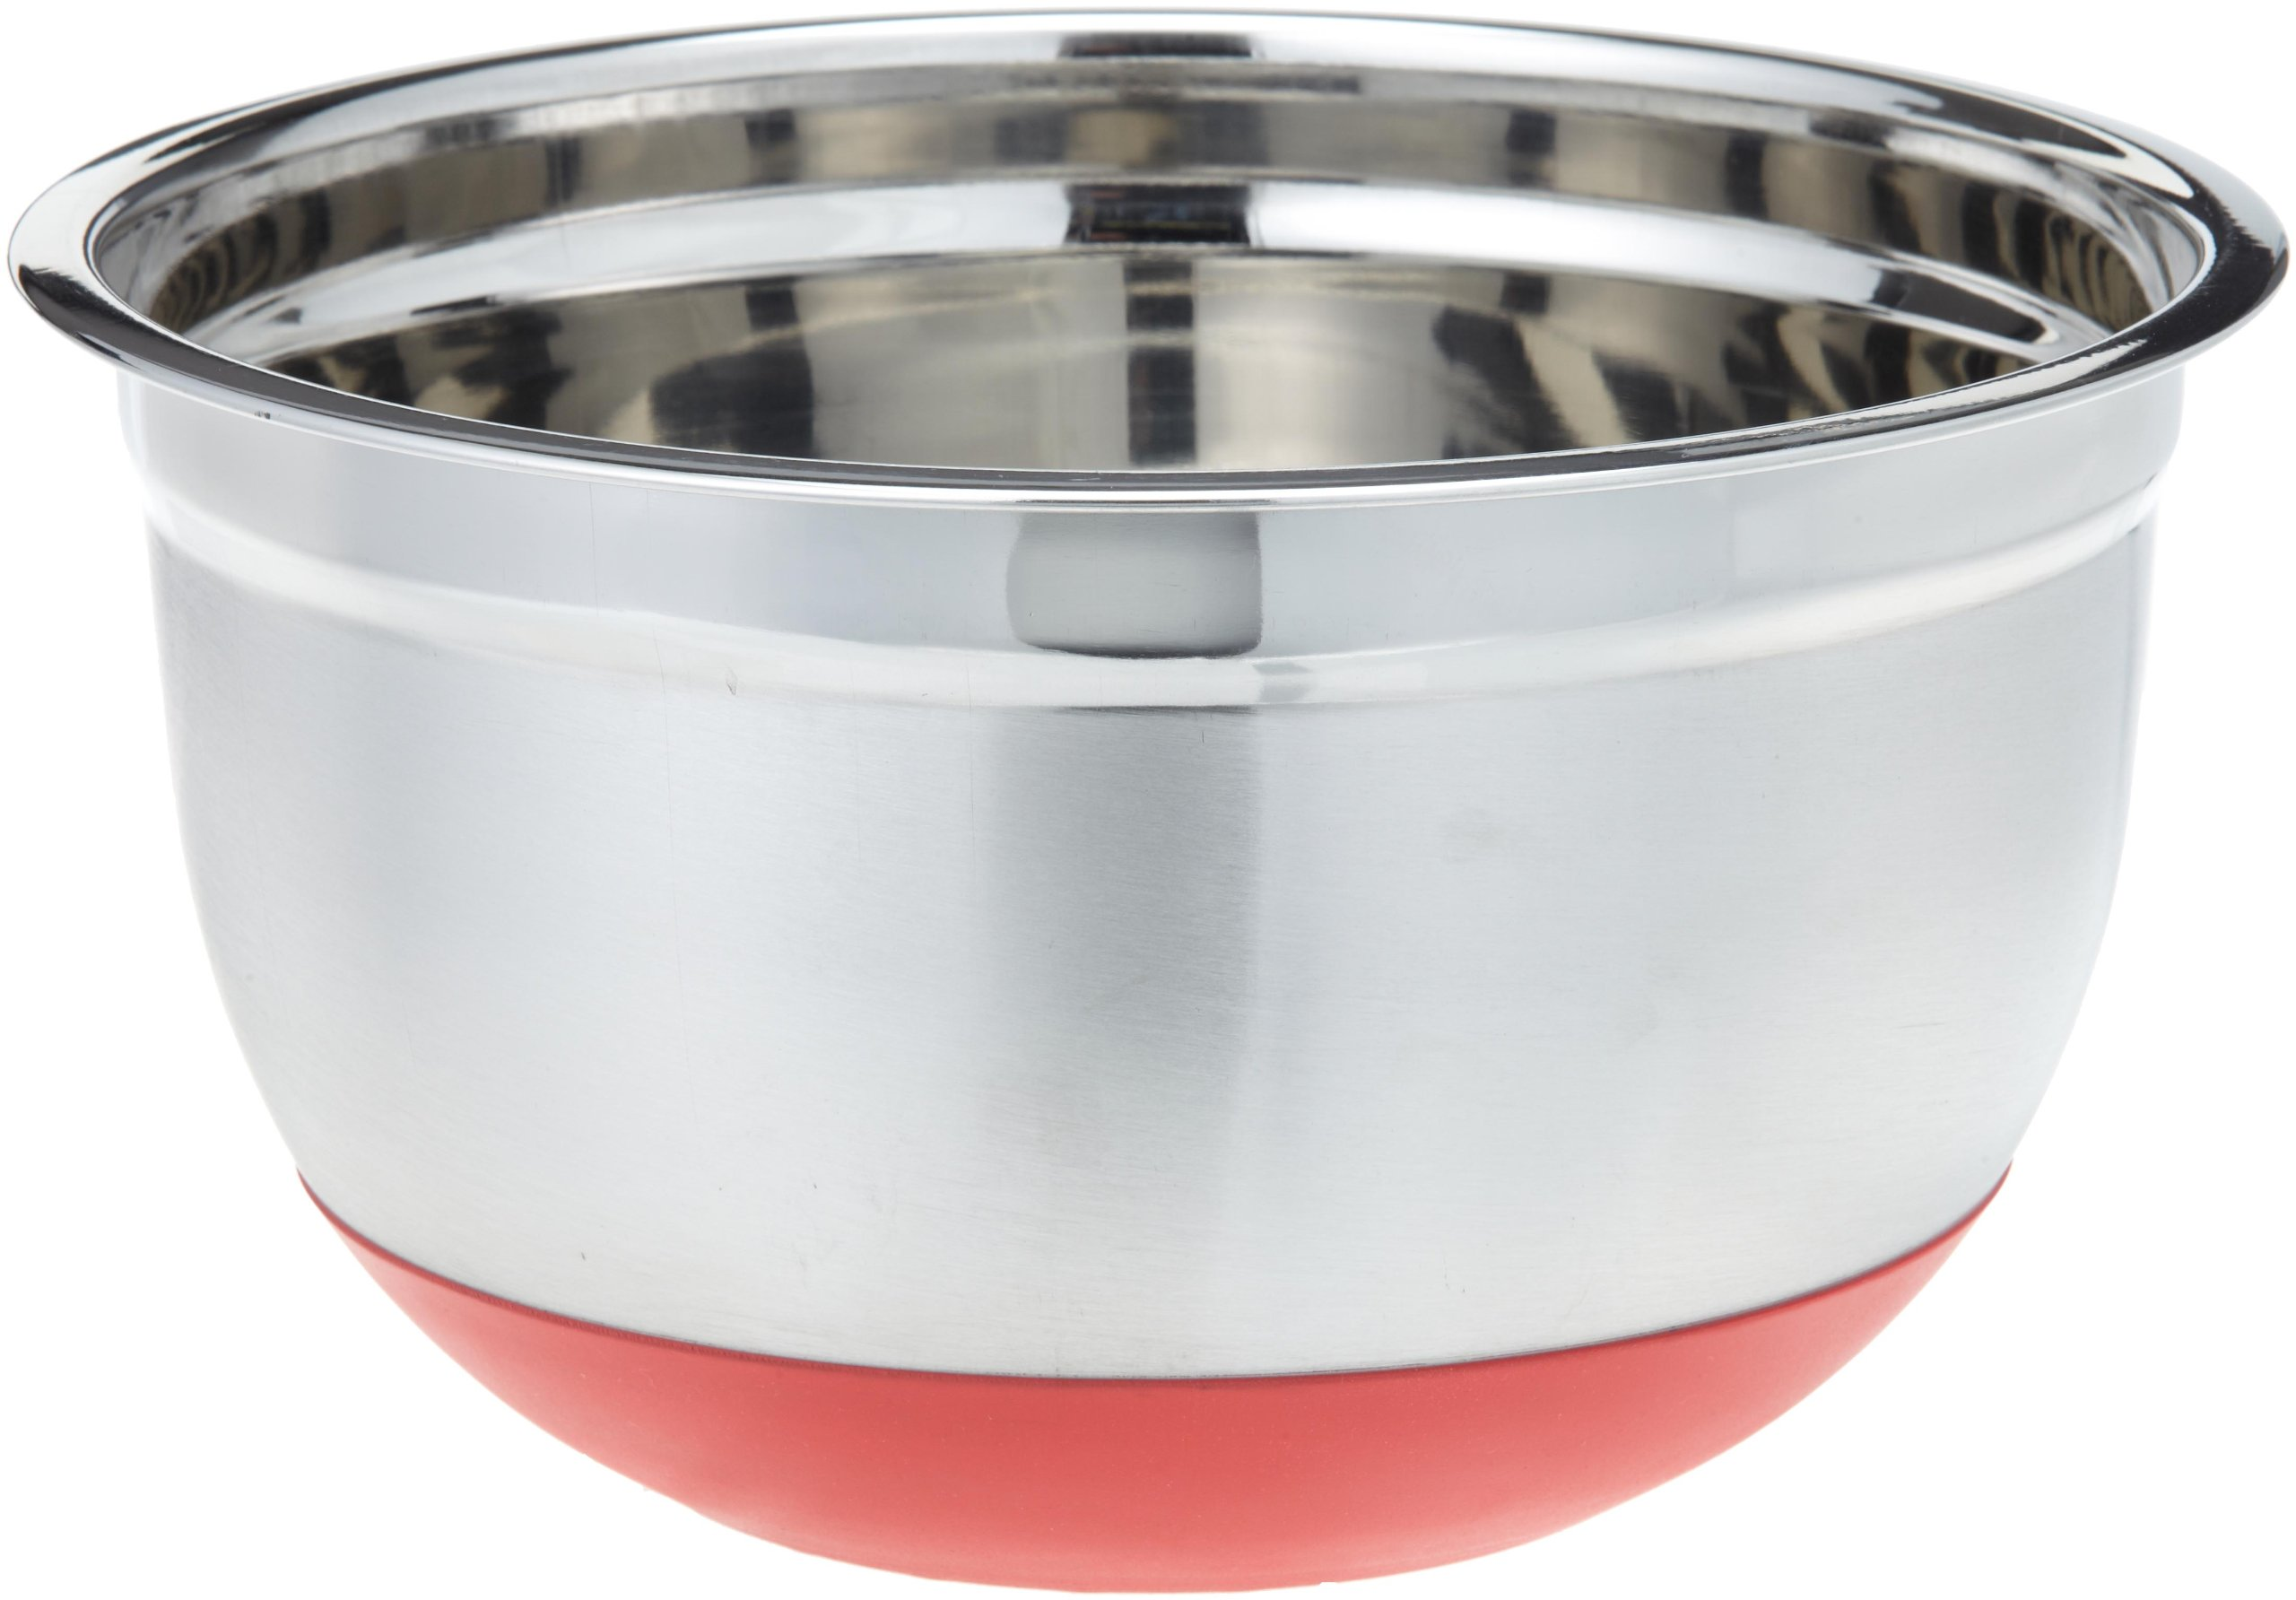 ExcelSteel 298 5-Quart Stainless Steel Non Skid Base Mixing Bowl